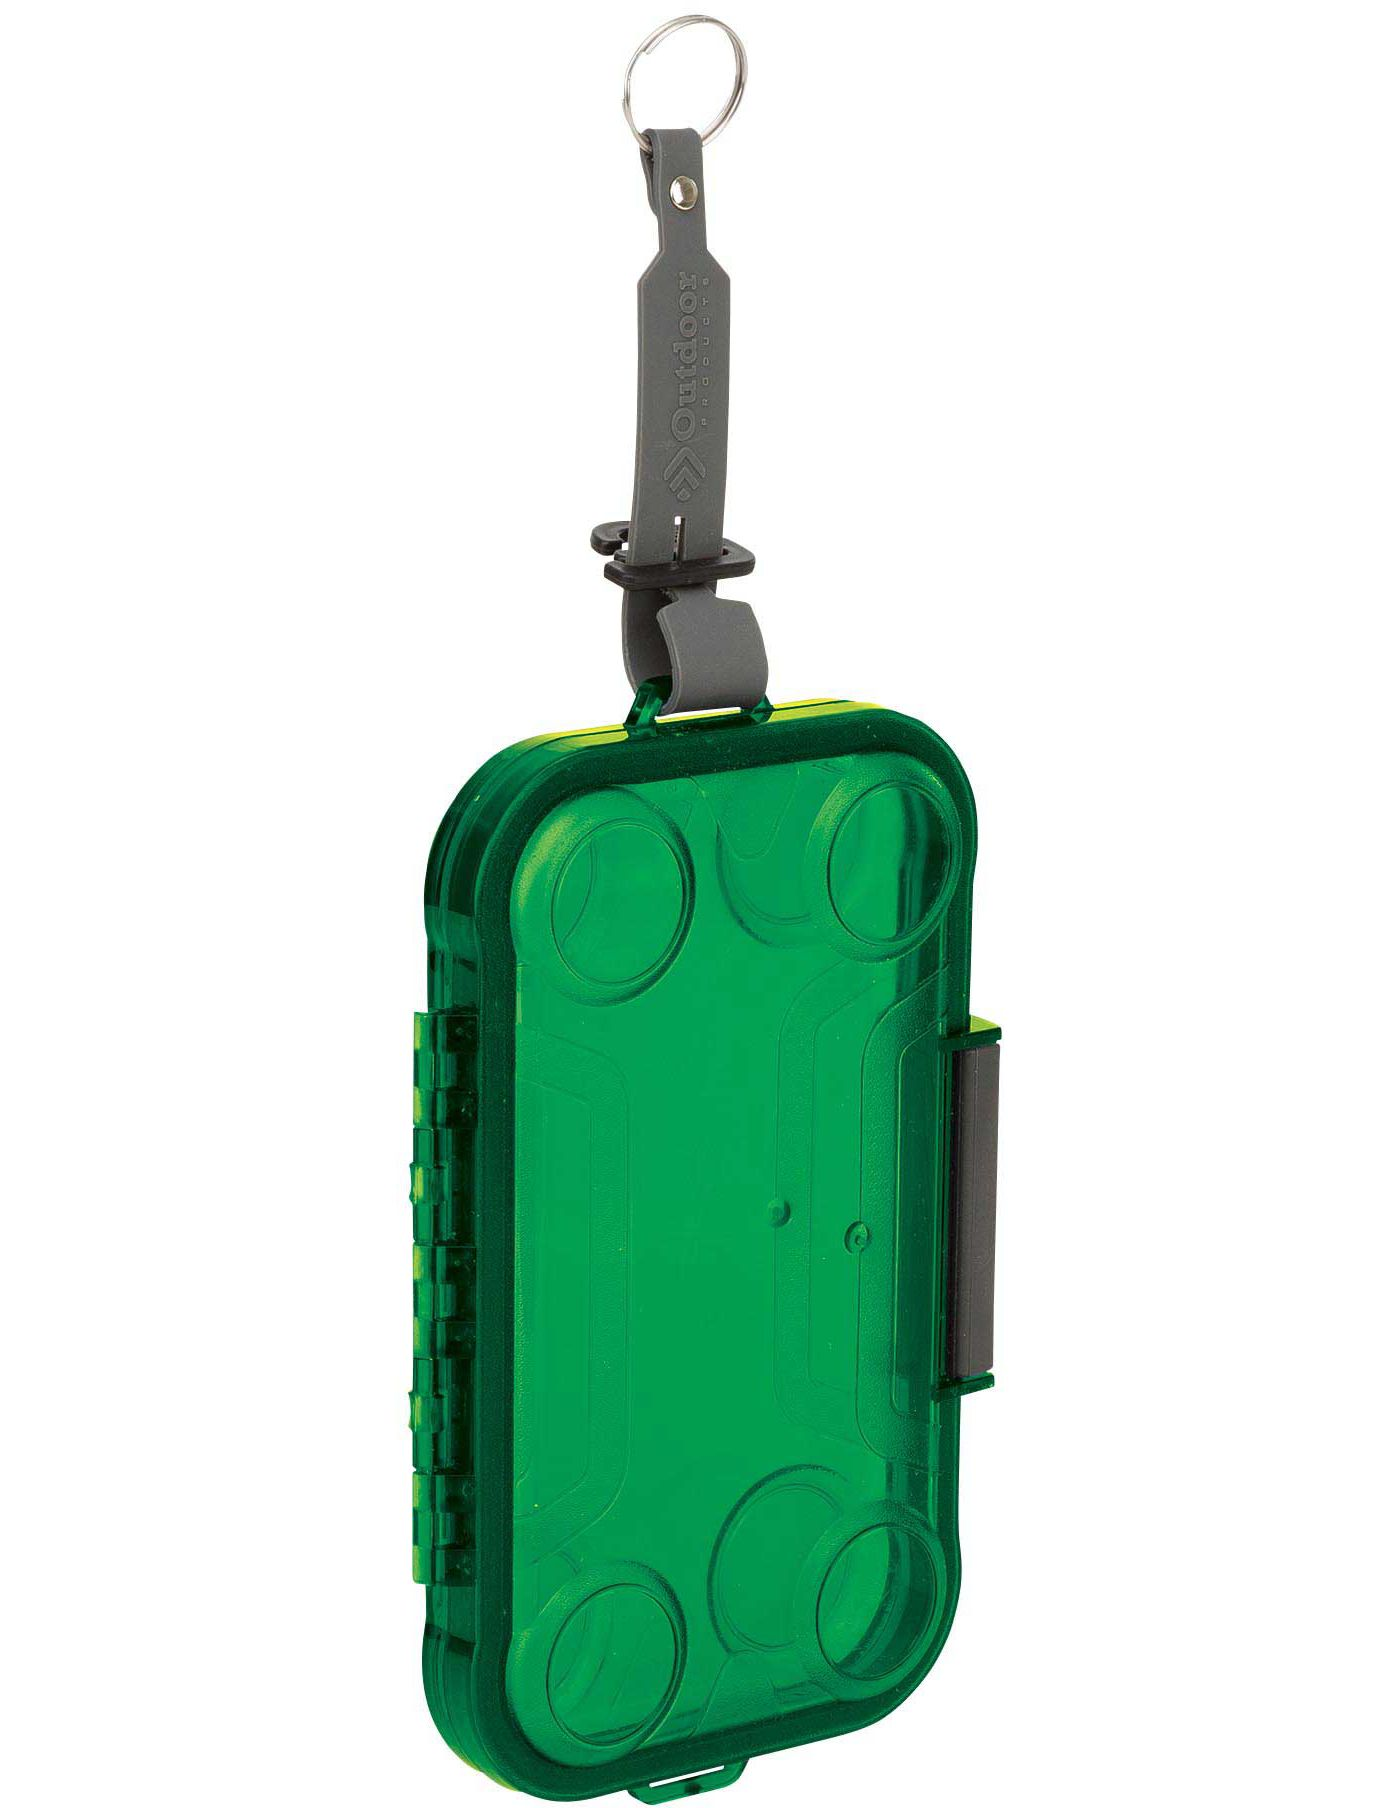 Outdoor Products Large SmartPhone Watertight Phone Case